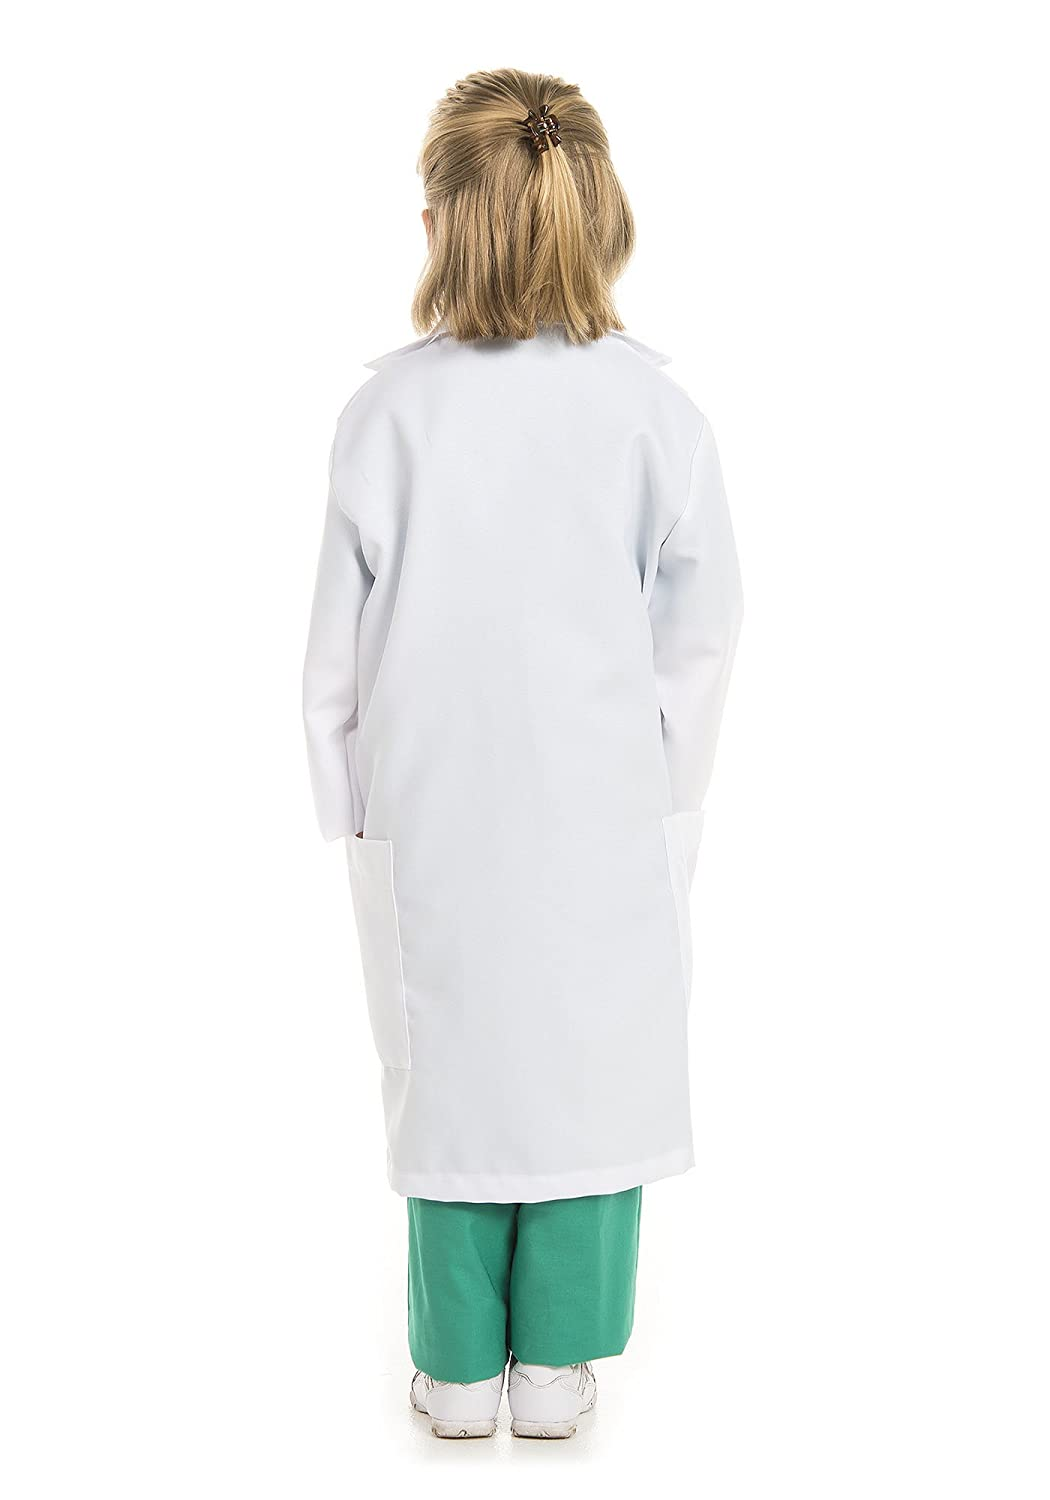 Kidcostumes Doctor Medical Scrubs with White Lab Coat Child Youth